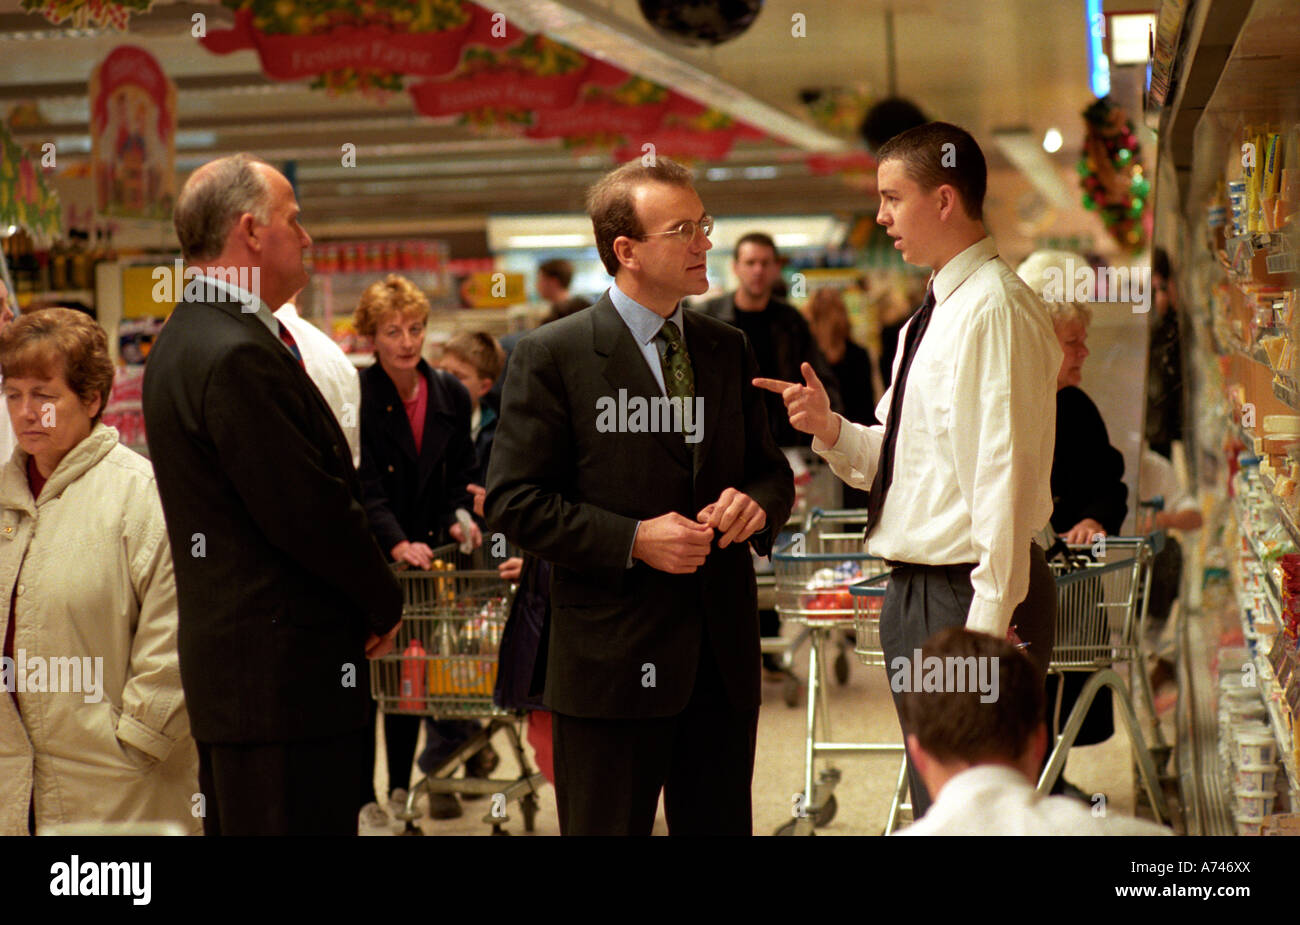 SIR TERRY LEAHY CEO OF TESCOS SUPERMARKET CHAIN Stock Photo